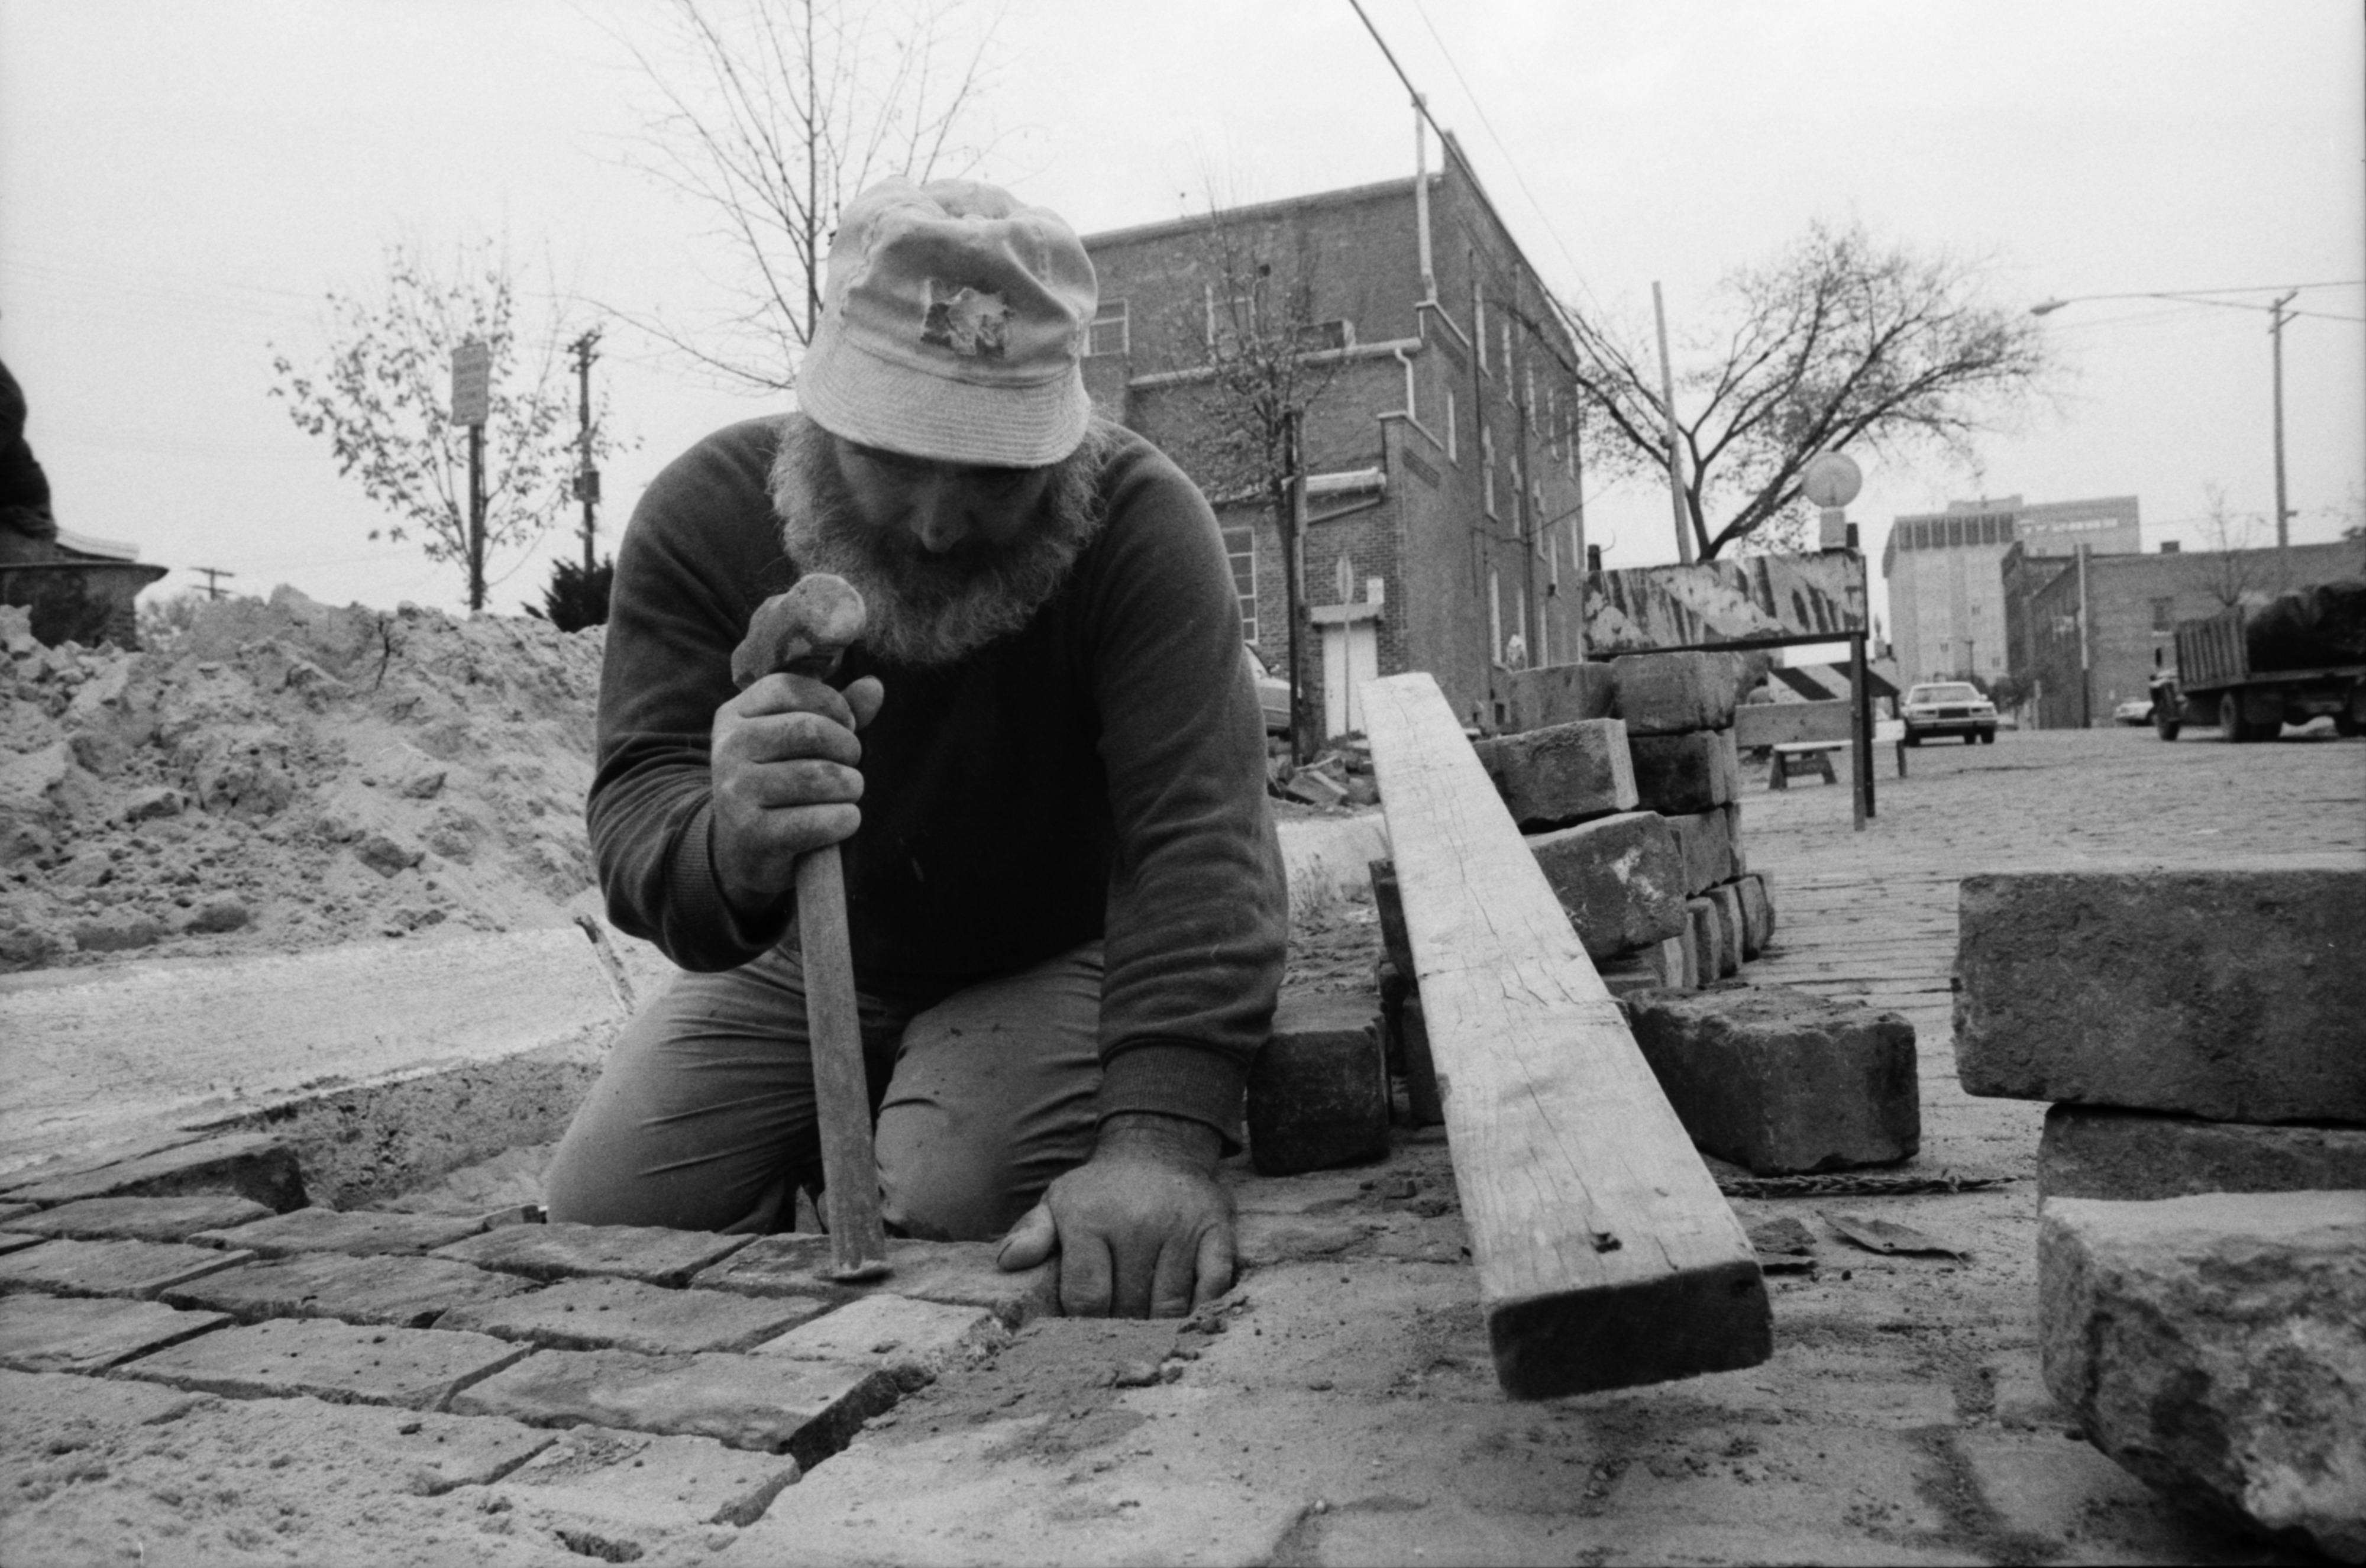 Roger Smith Repairs Bricks on Detroit Street, October 1984 image